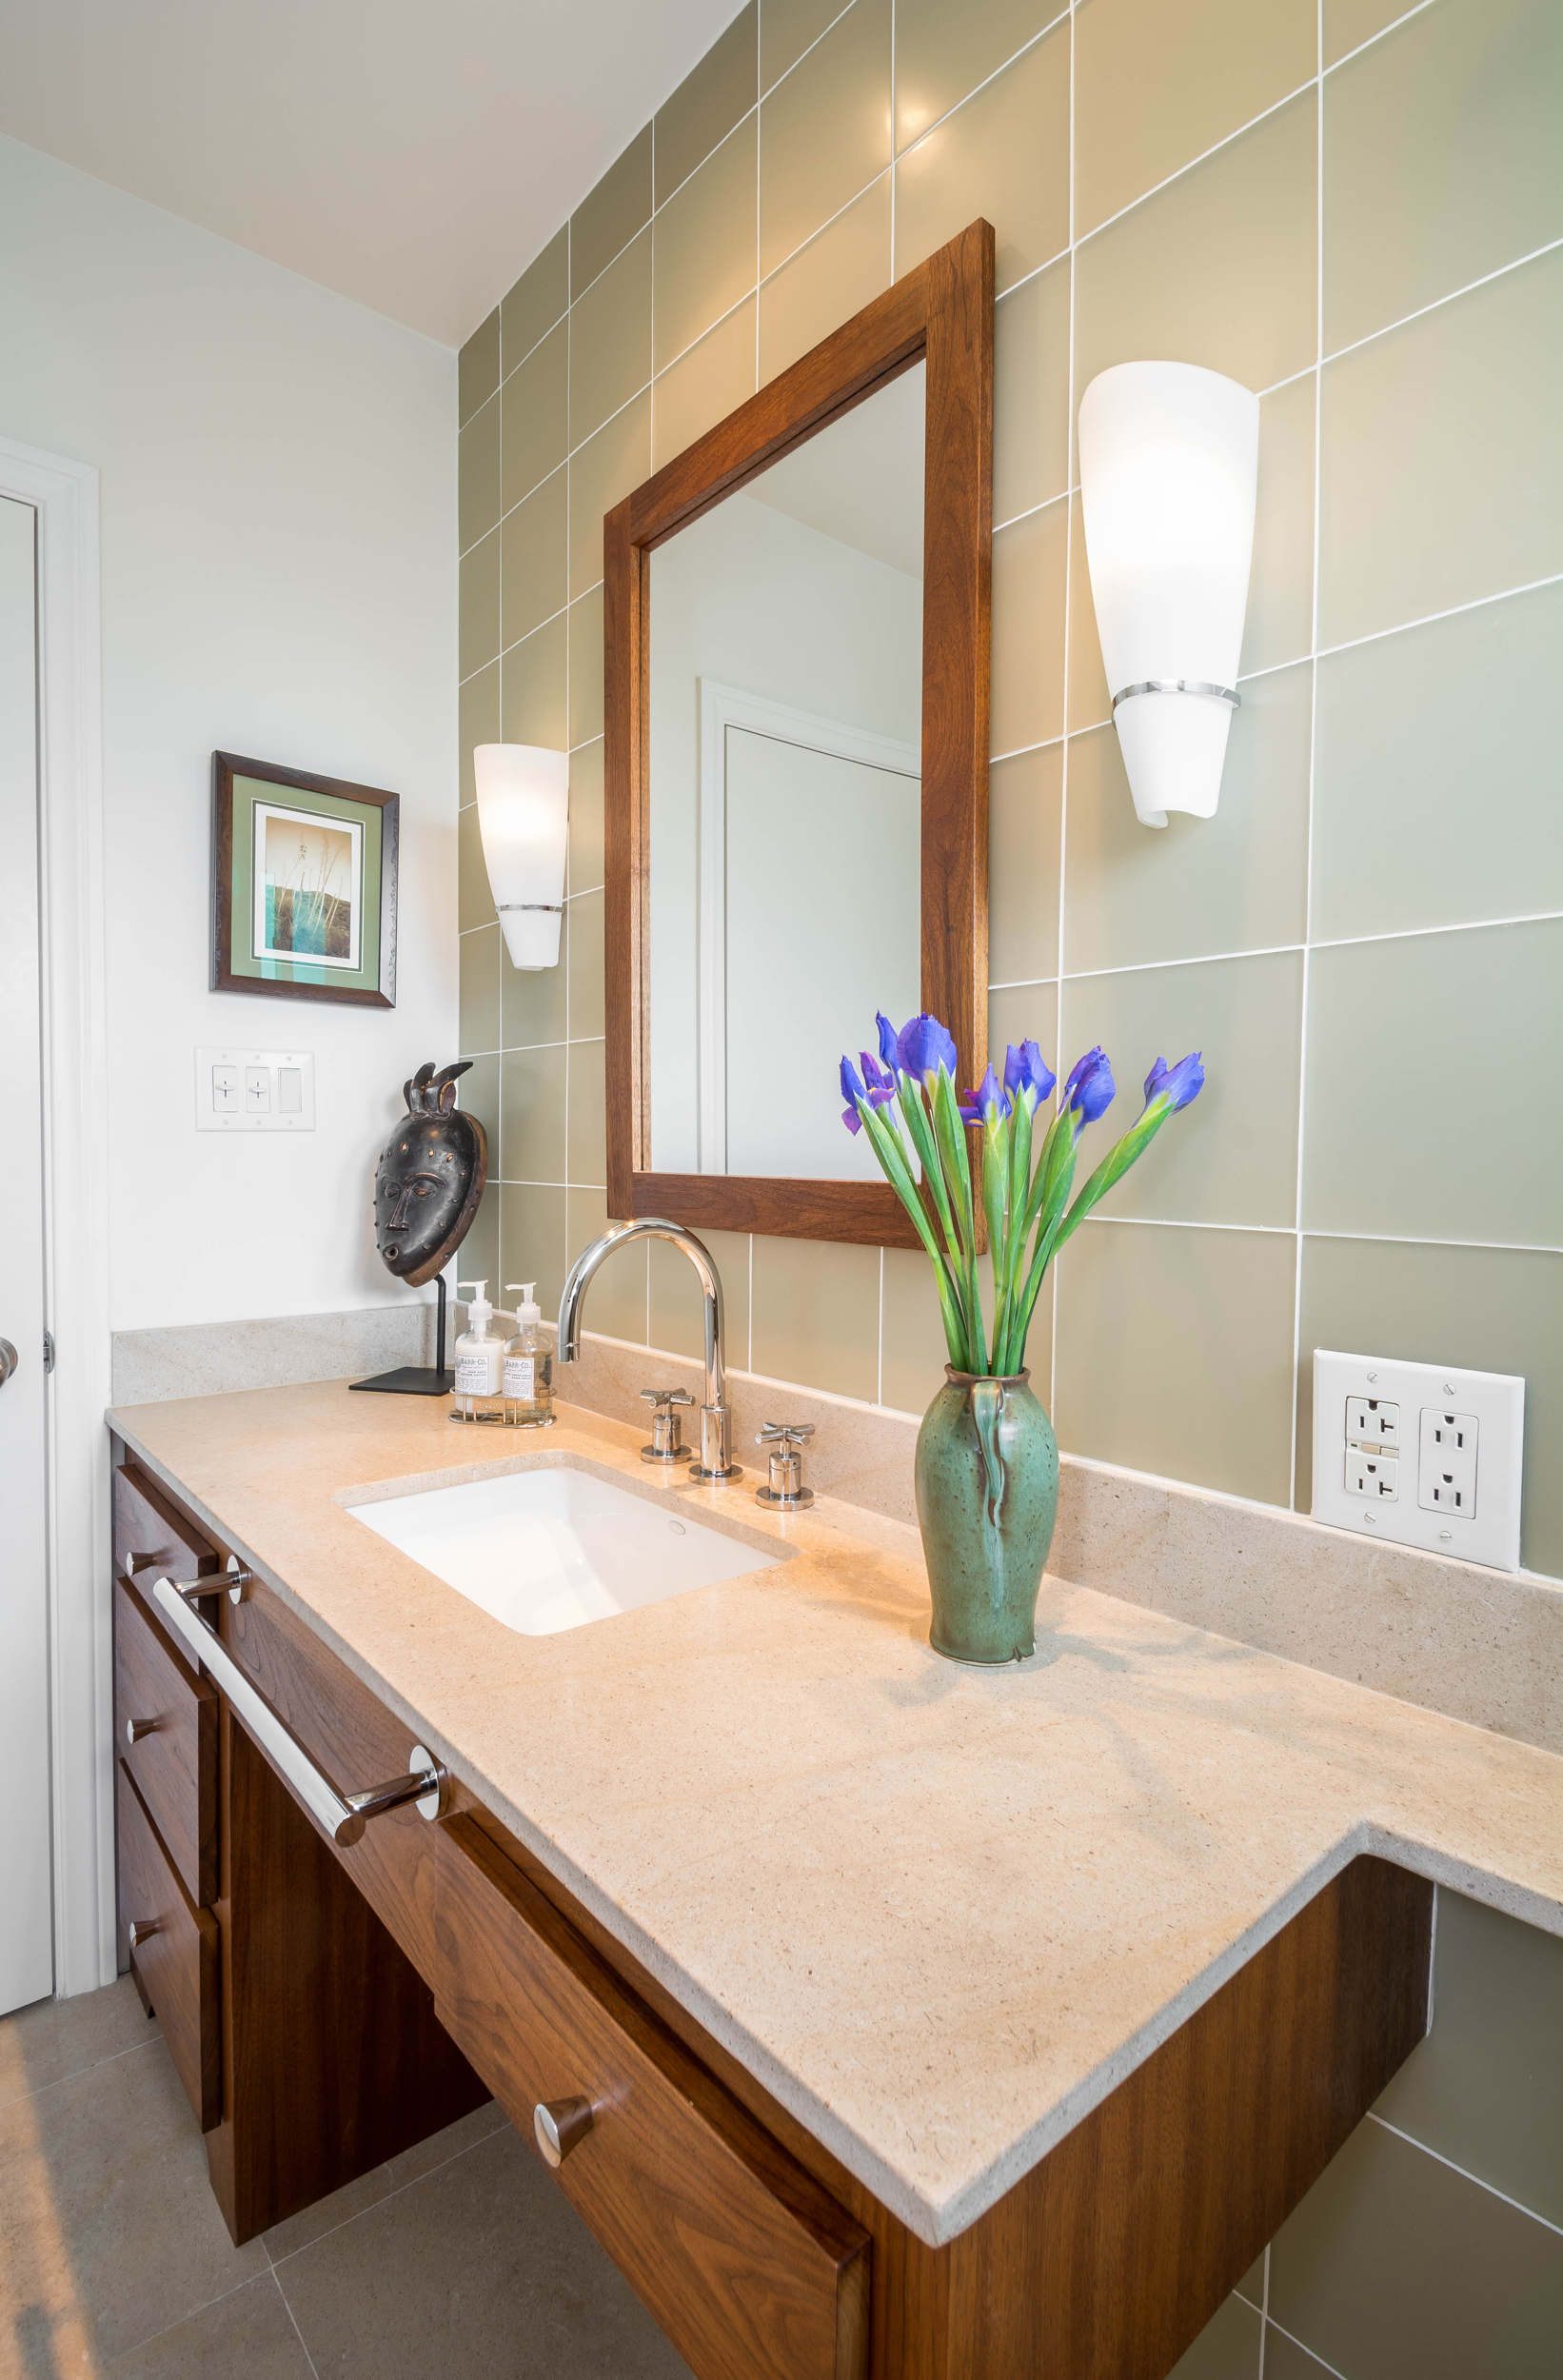 This sophisticated powder room features a custom-built walnut mirror frame and bathroom vanity accentuated by a limestone top, matte glass tiles and modern sconce light fixtures